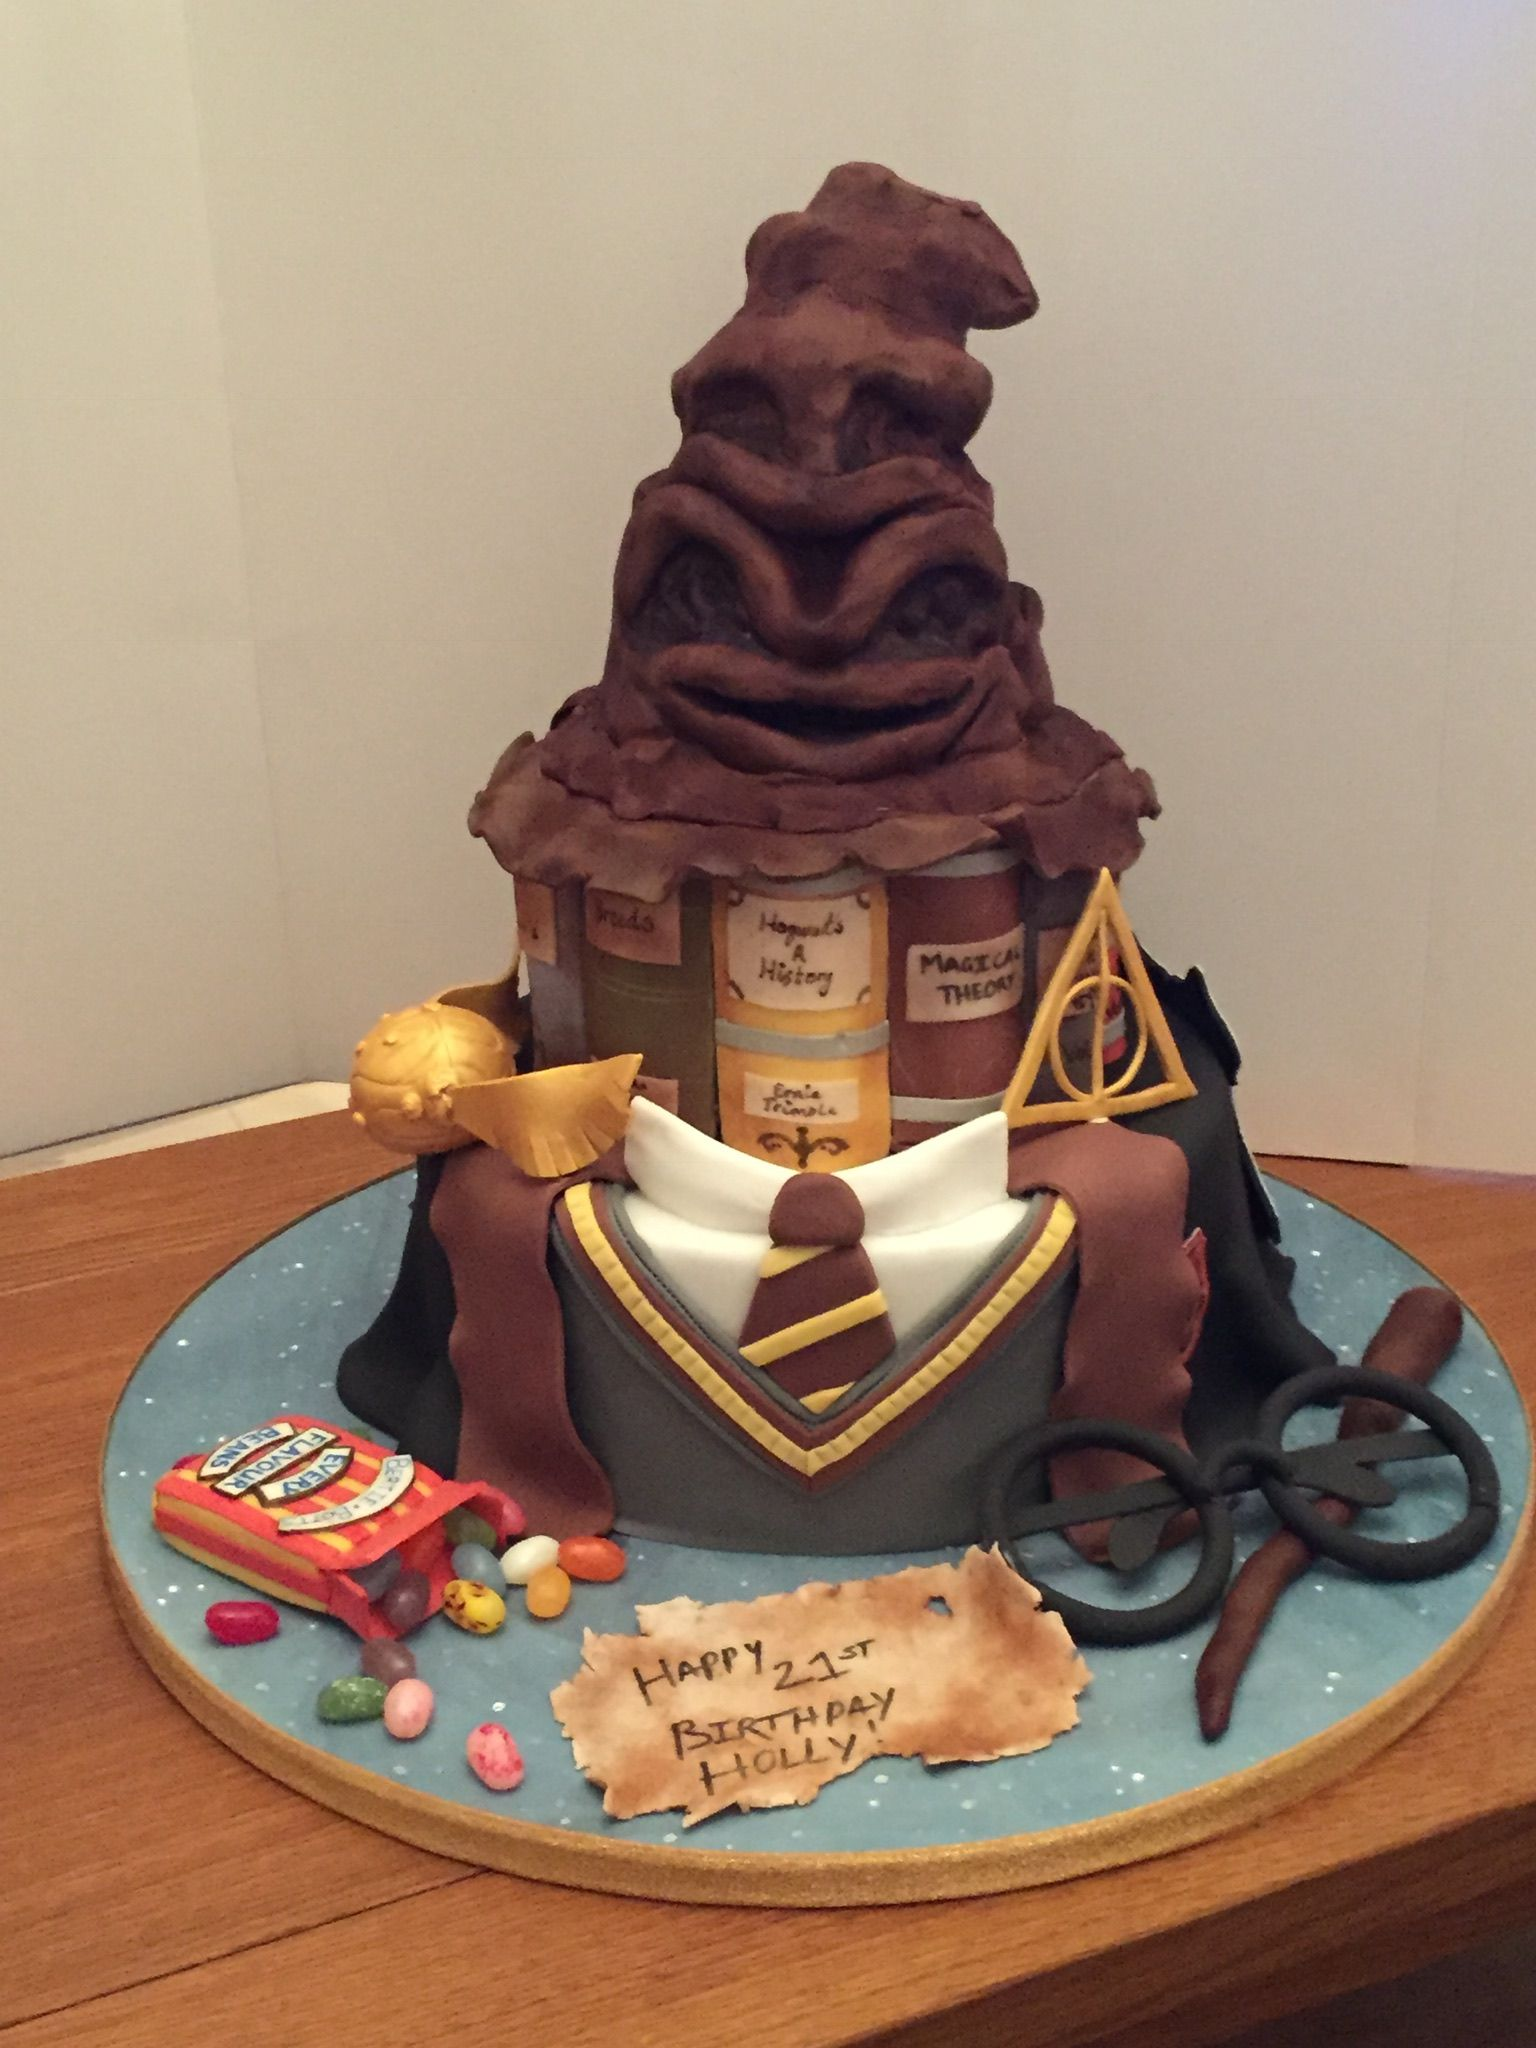 Tremendous Harry Potter Cake Harry Potter Birthday Cake Harry Potter Cake Personalised Birthday Cards Paralily Jamesorg